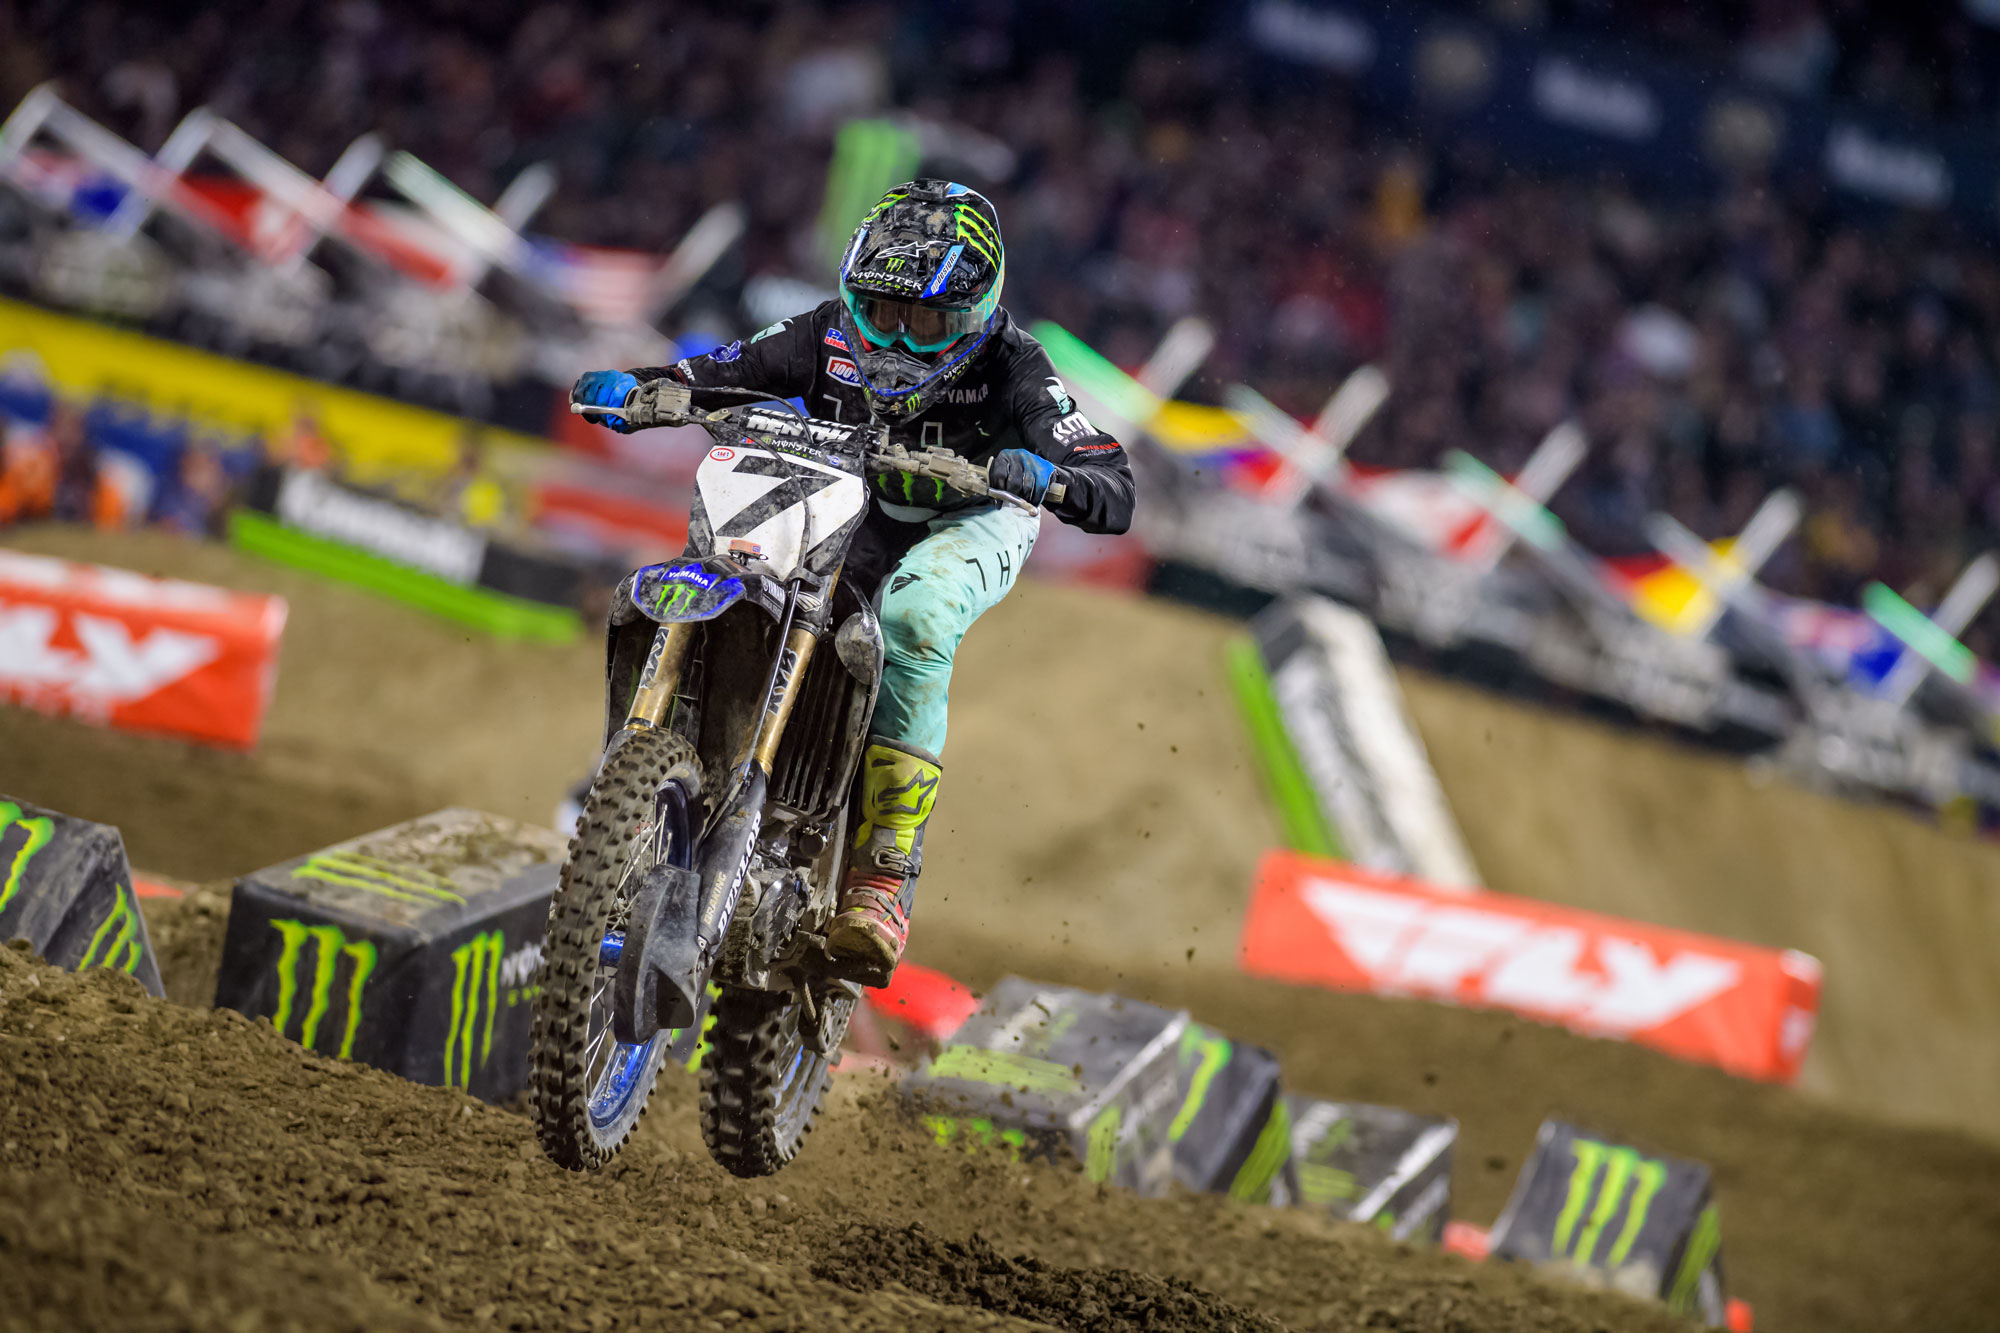 Monster Yamaha Racing's Aaron Plessinger went 12-9-6 for 7th overall on the night.